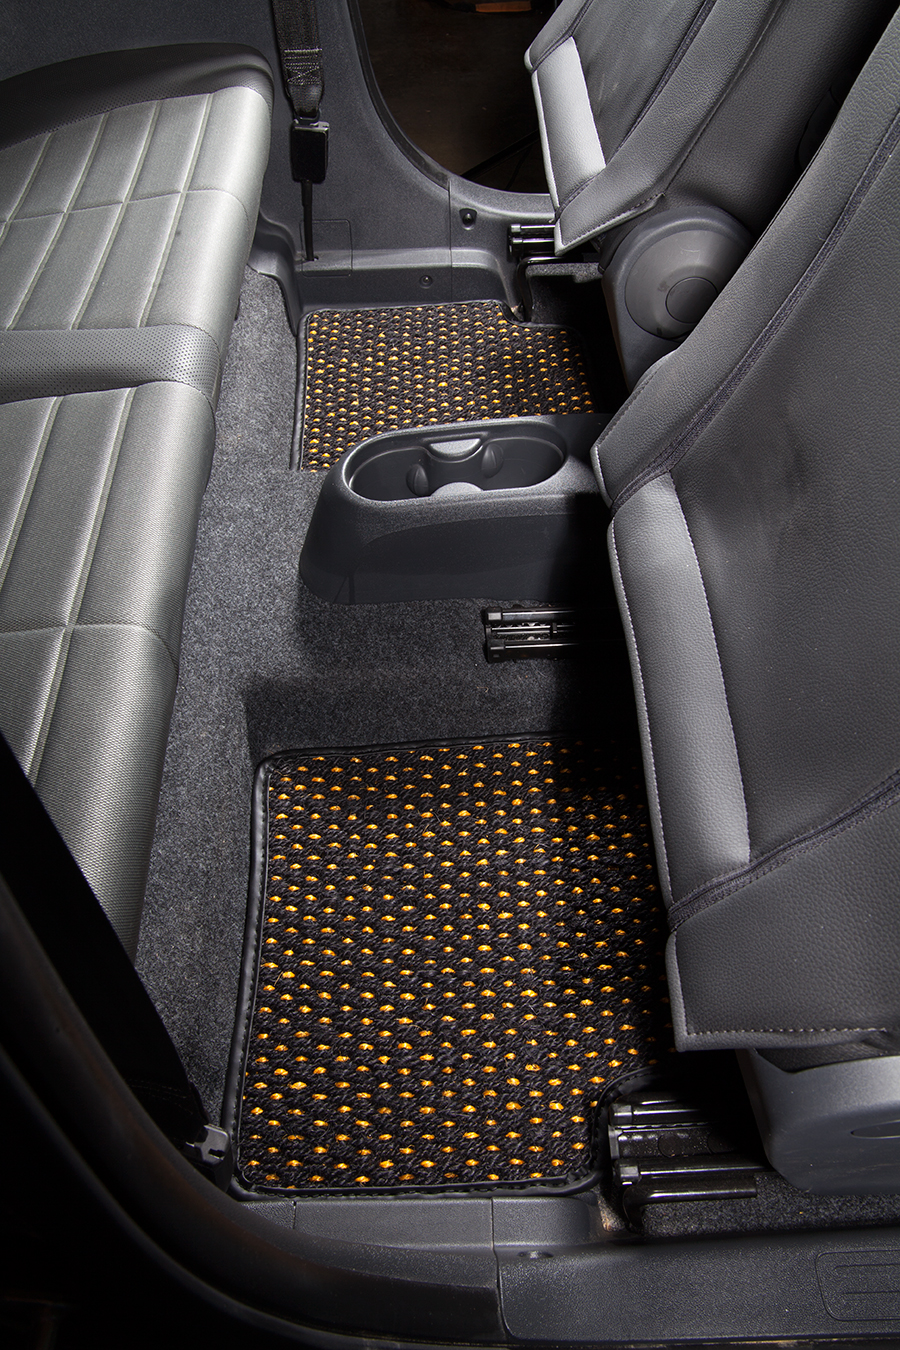 floor mats are how watch coco mat com pca cocomats youtube spotlight made